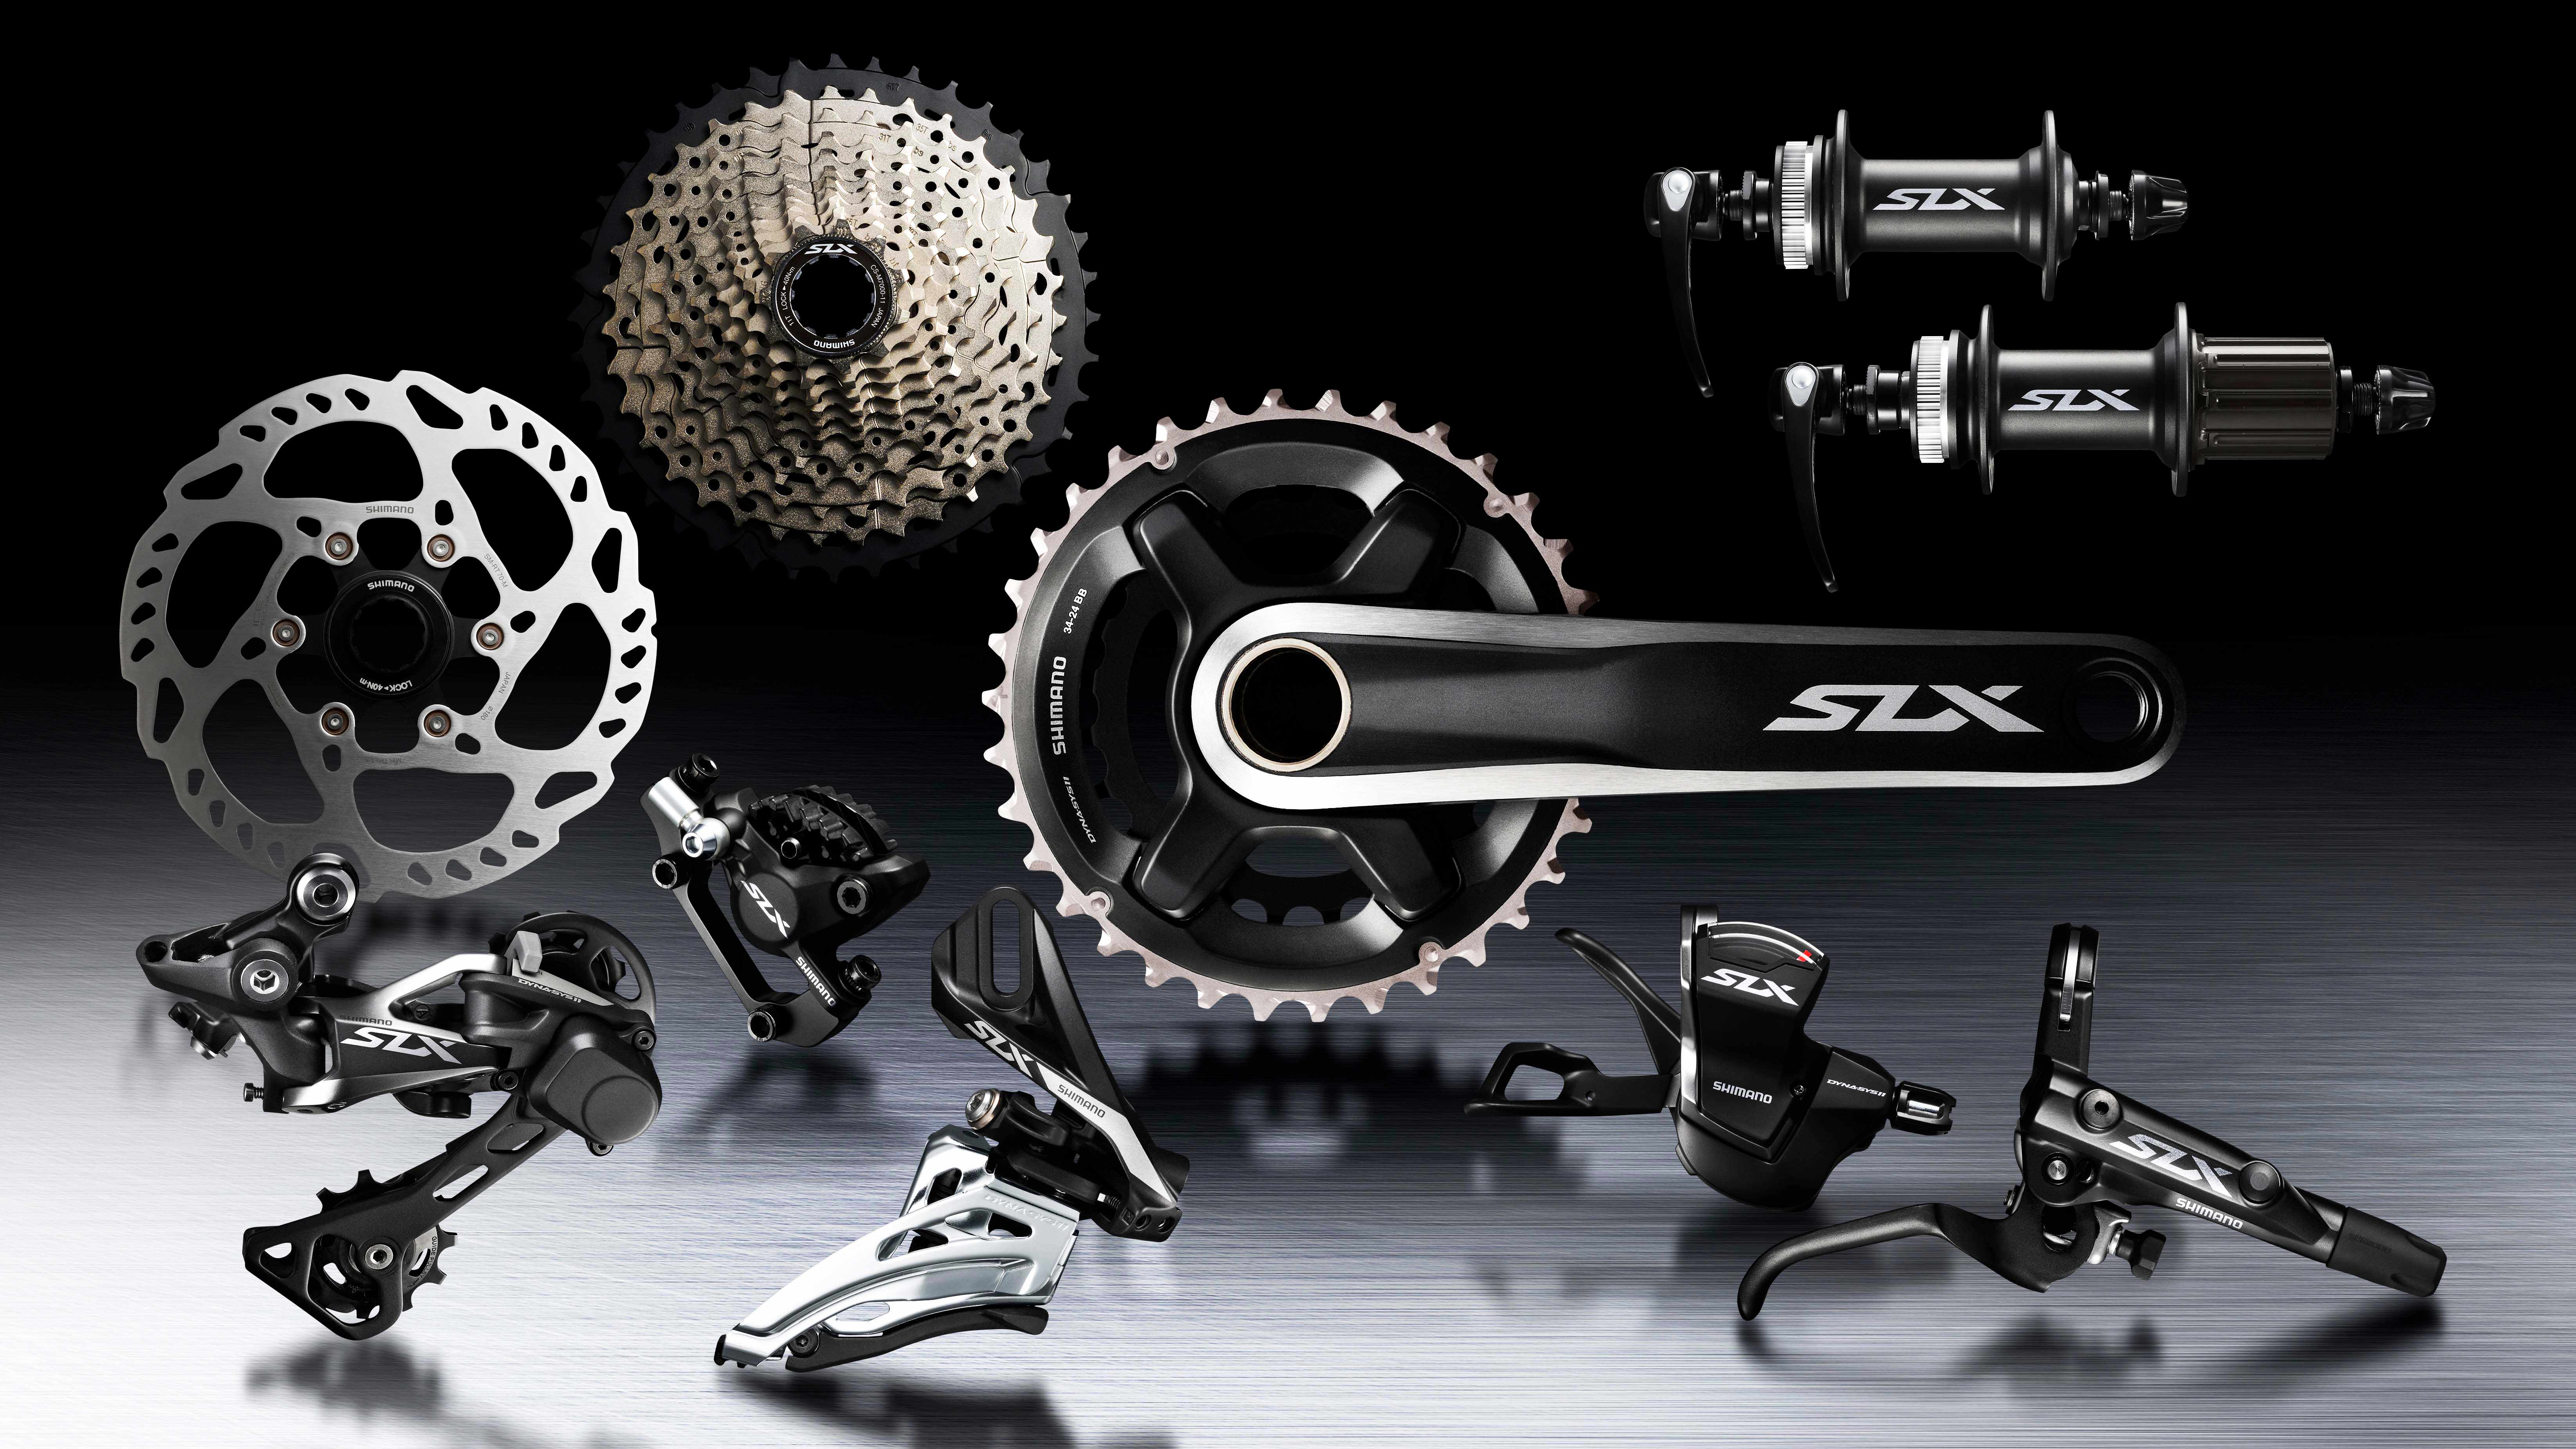 SLX has always been a bang-for-buck winner and this new group should reinforce that